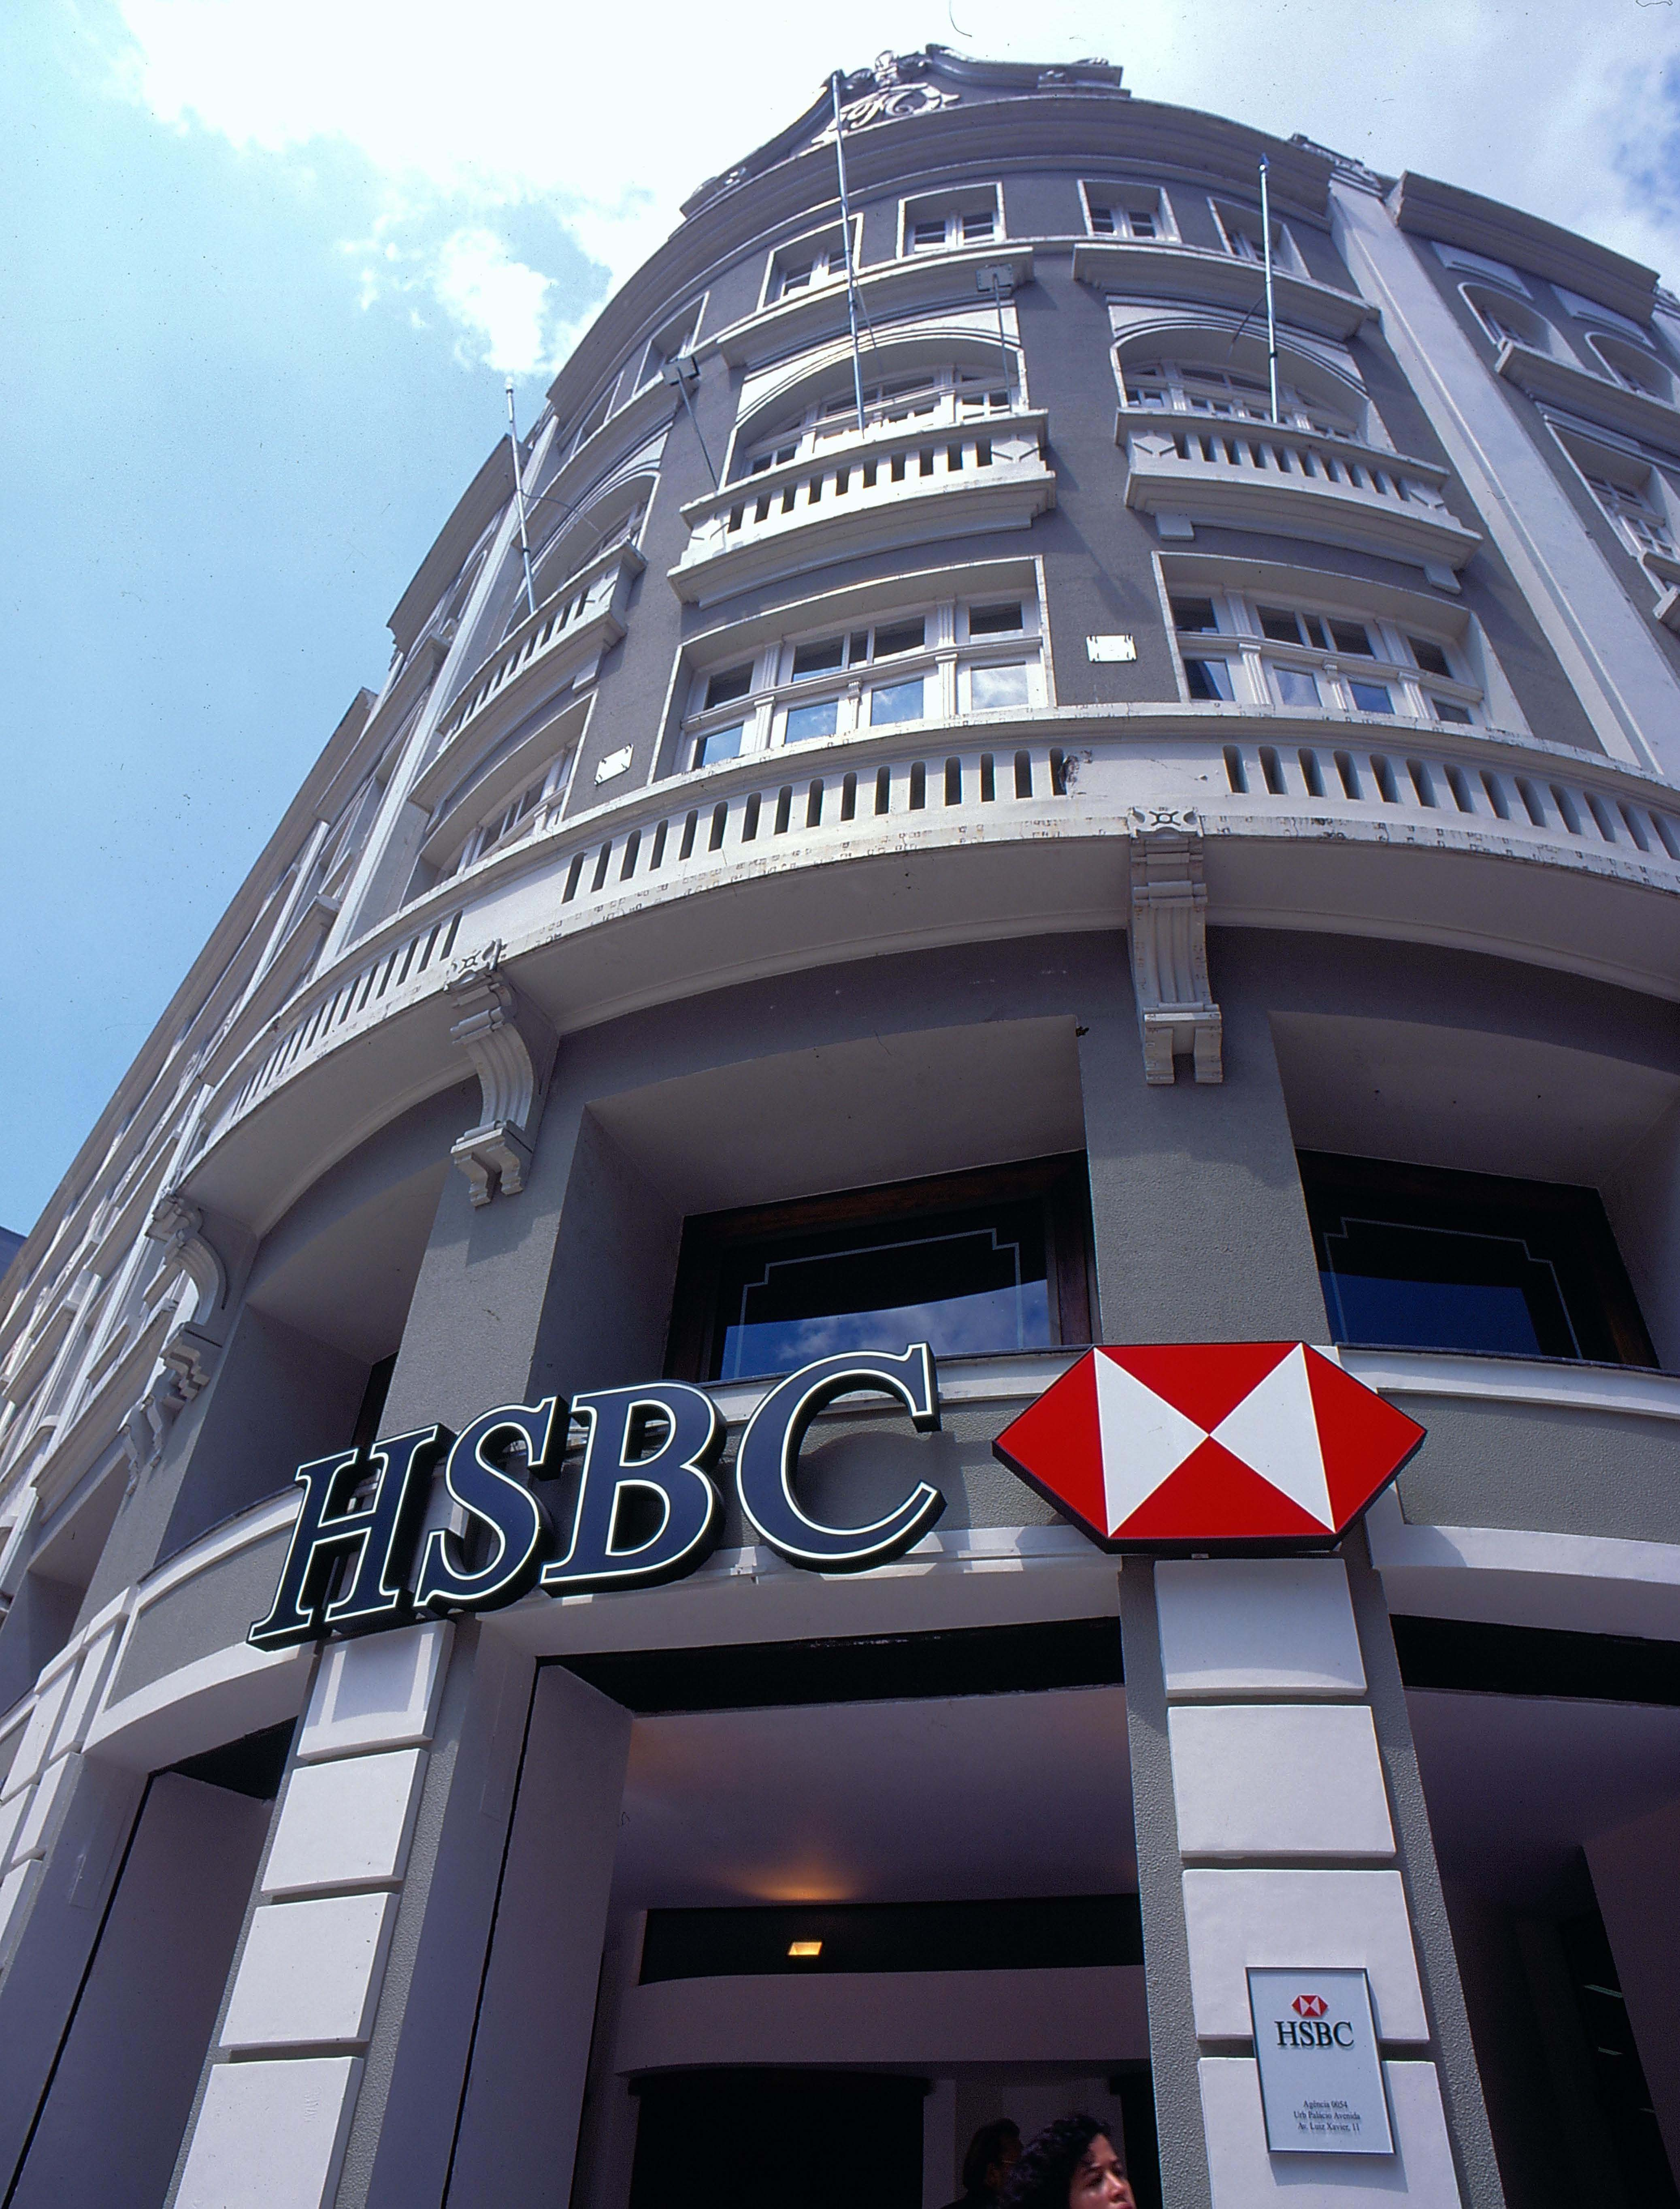 HSBC Bank Branches in London